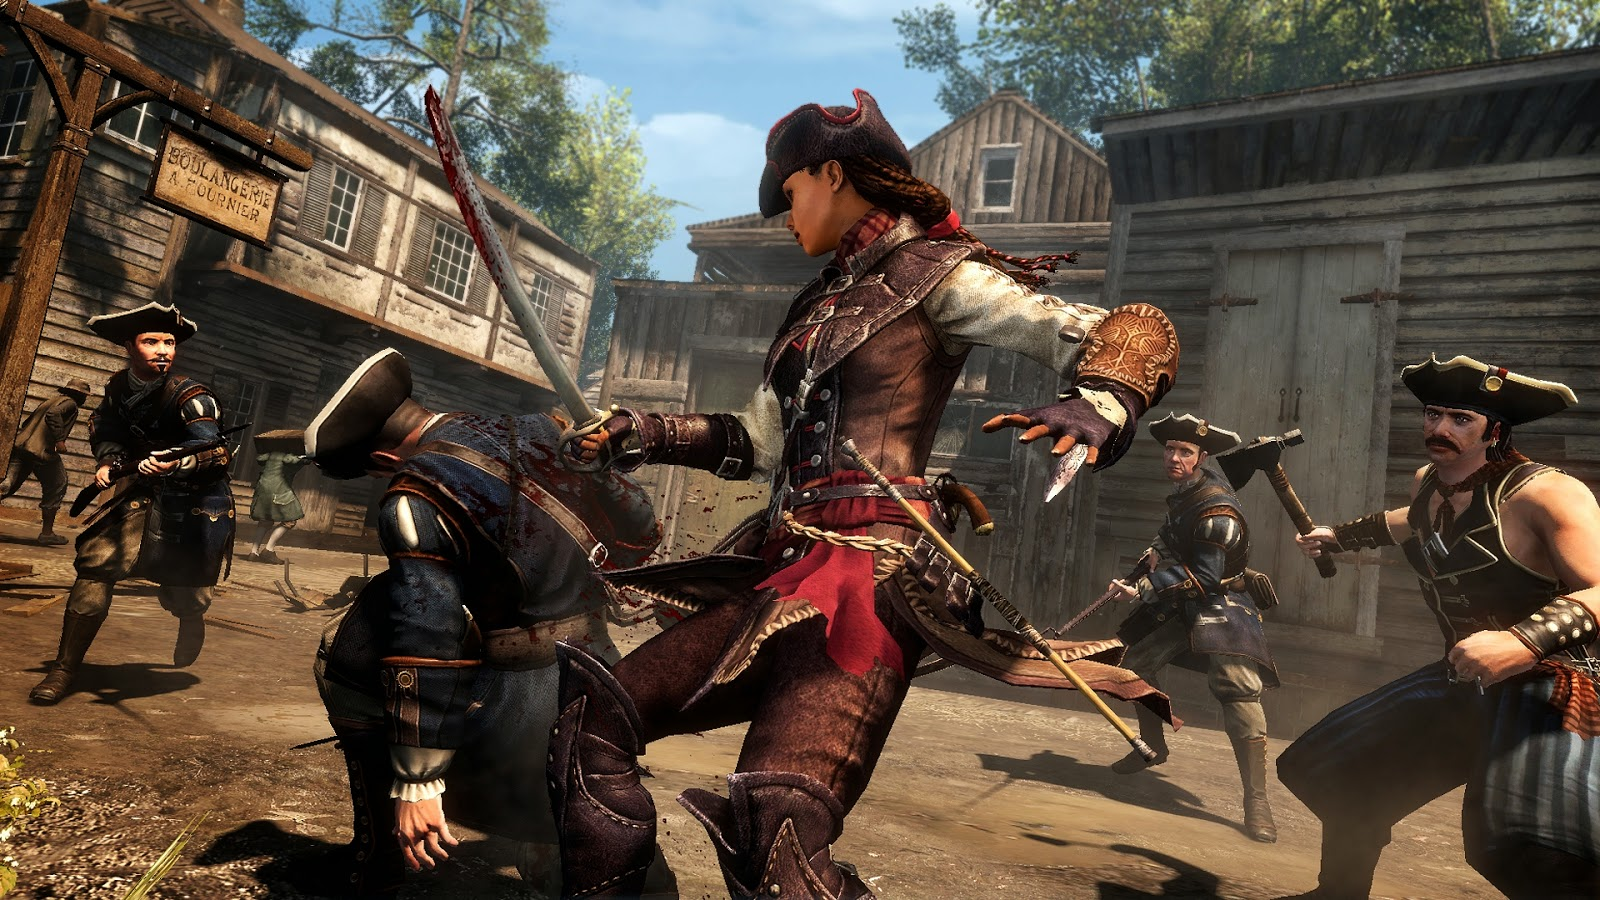 Aveline Assassin's Creed 3